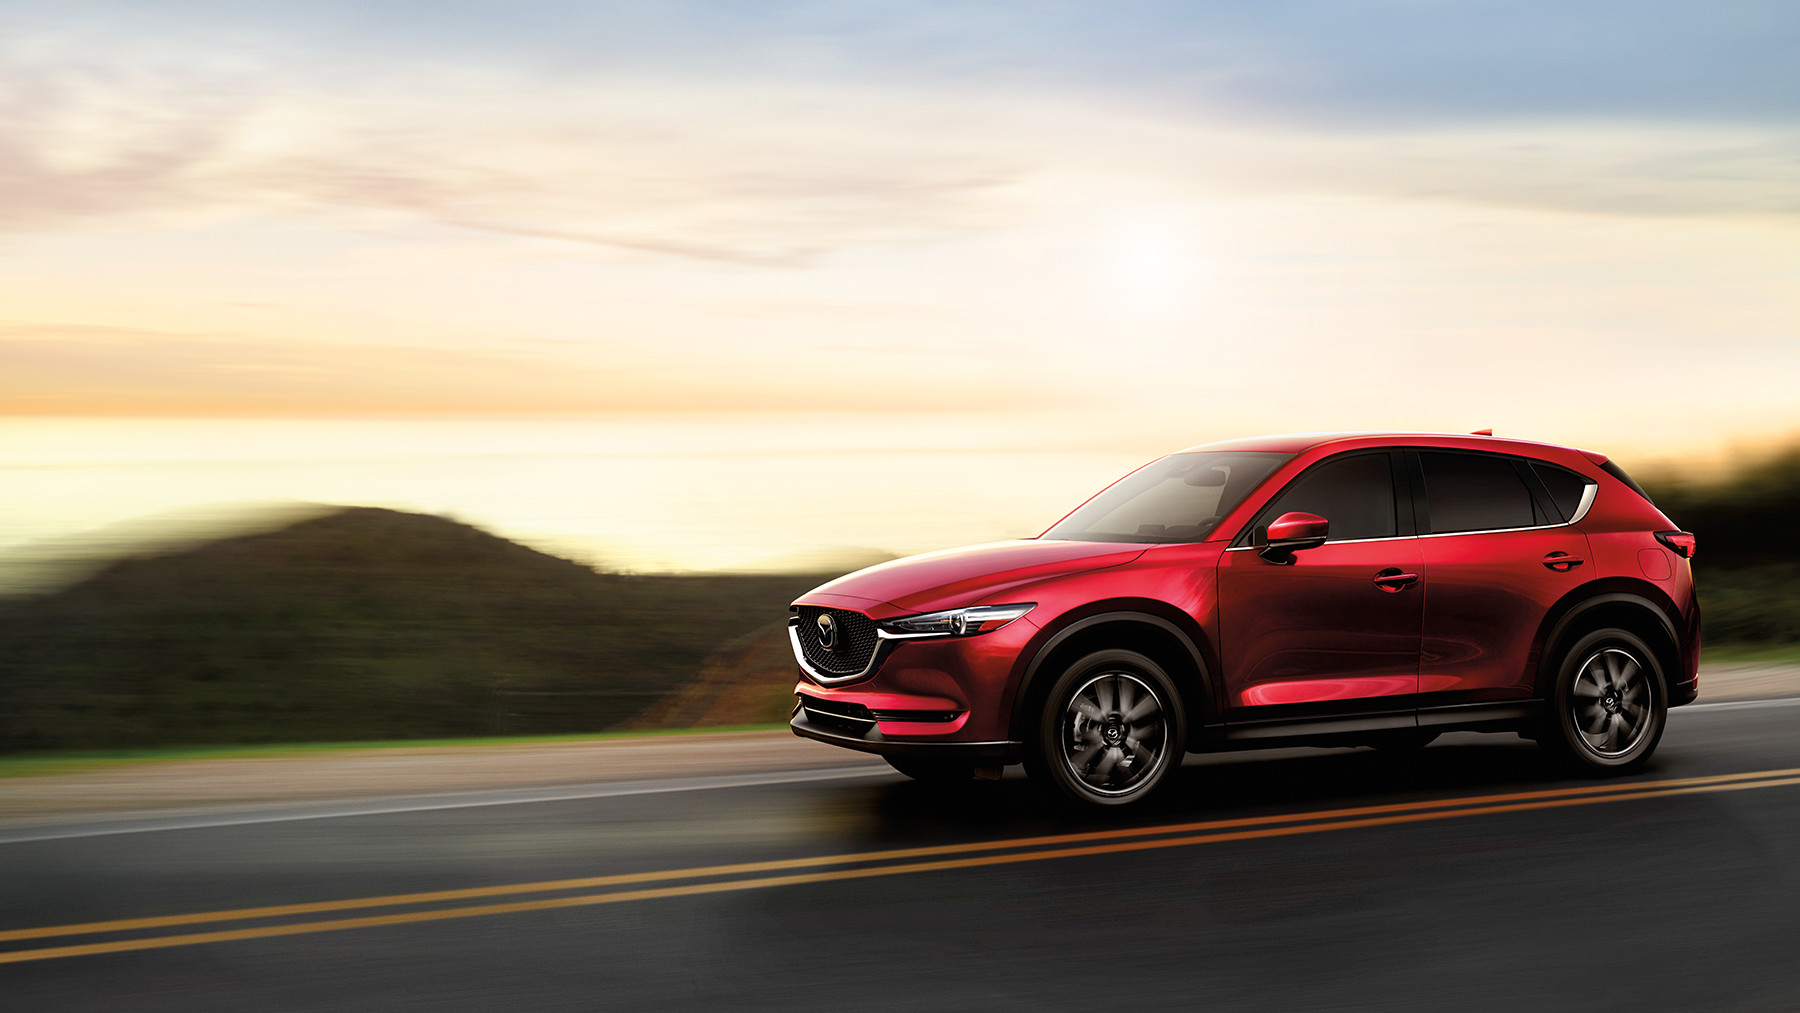 1800x1013 - Mazda CX-5 Wallpapers 7